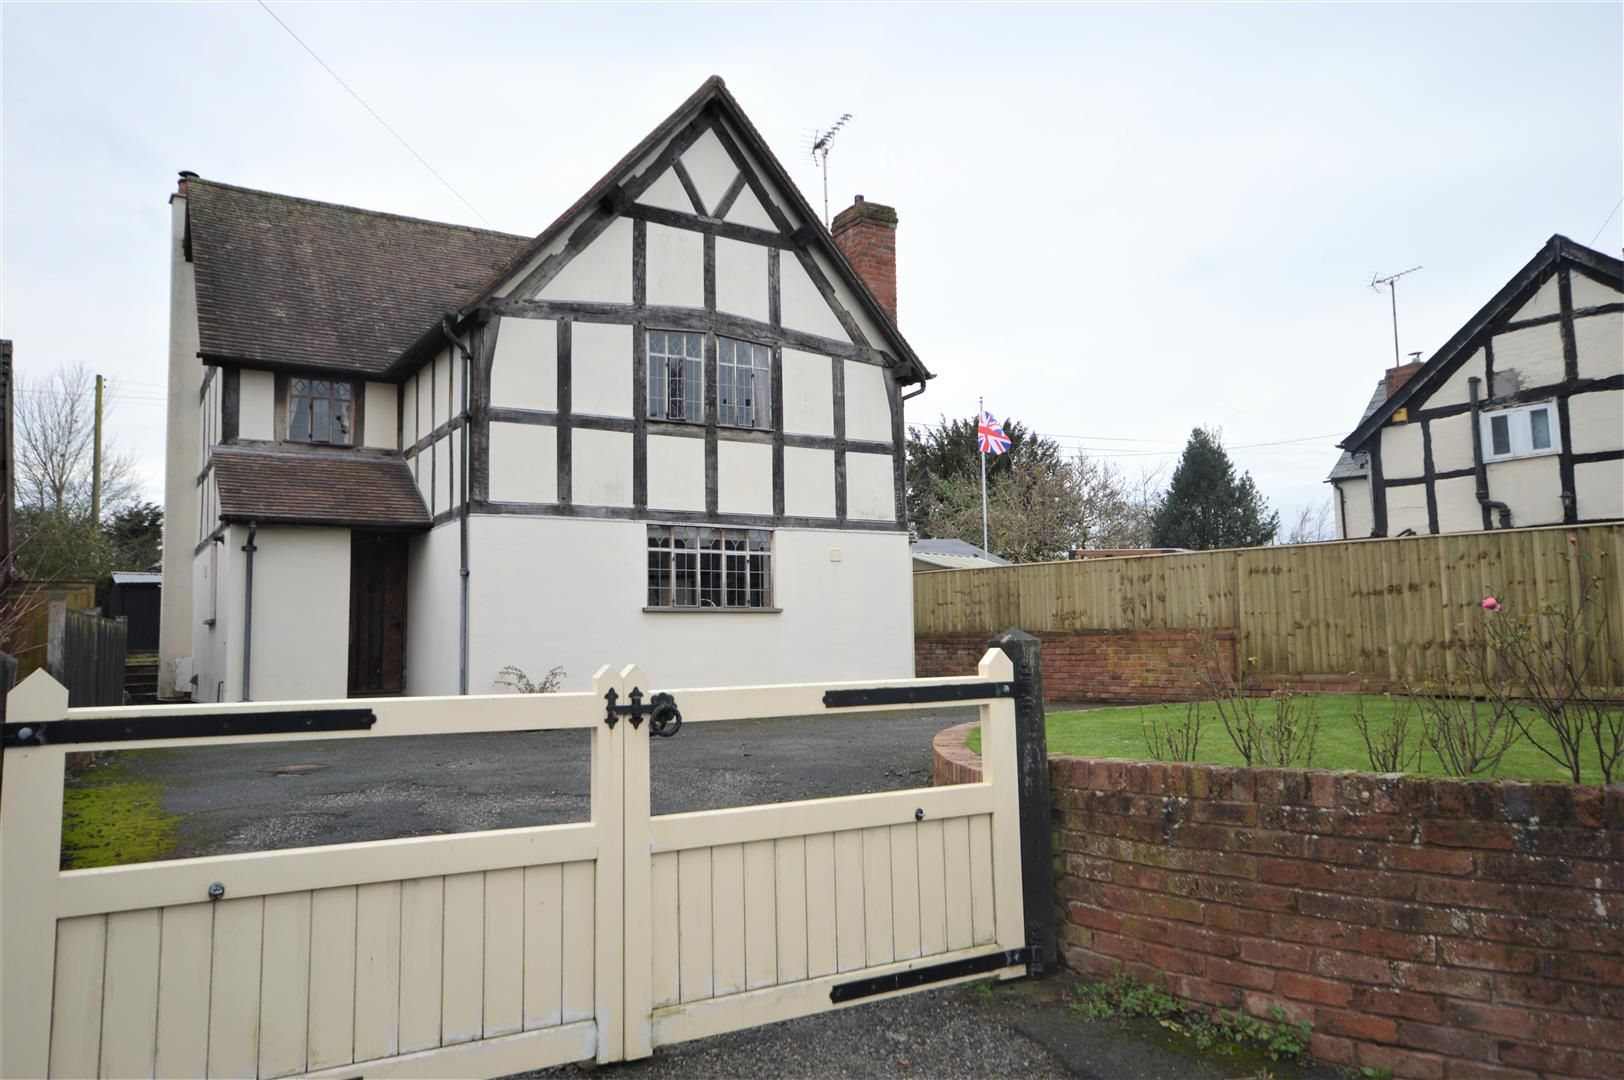 3 bed detached for sale in Lyonshall, HR5